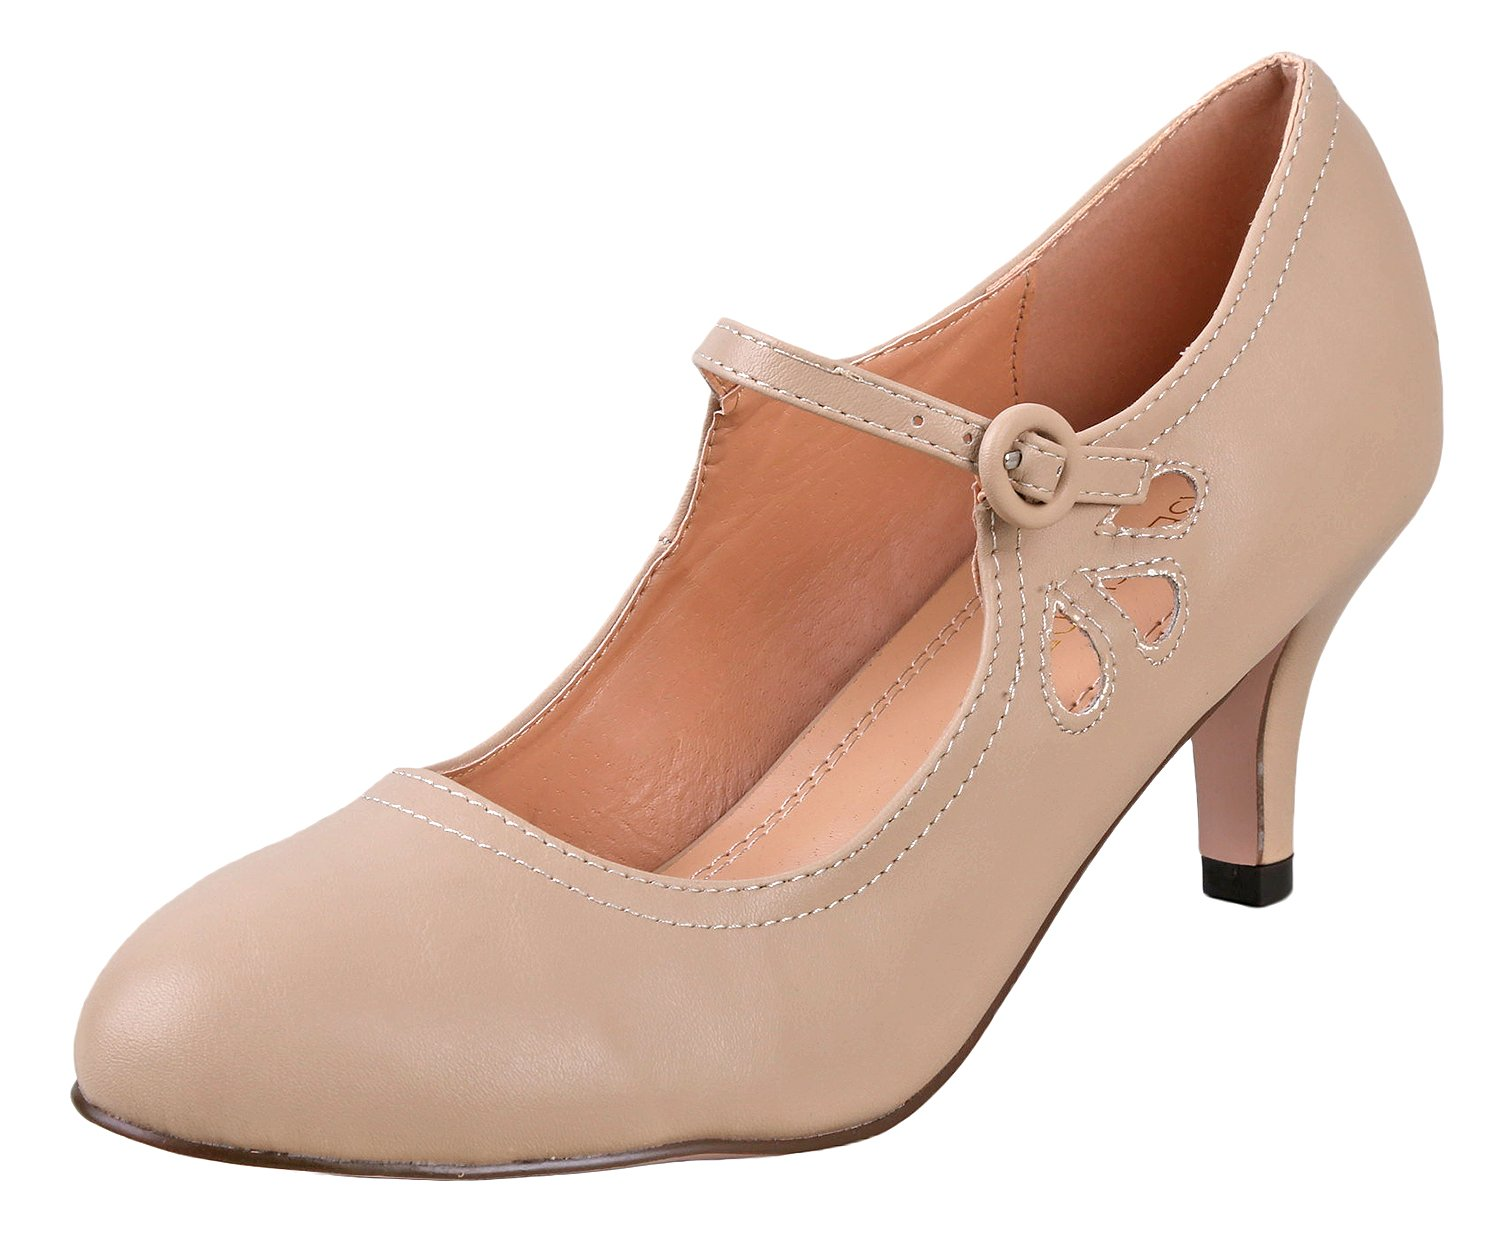 Chase & Chloe Women's Kimmy-21 Regular |Mary Jane | Mid Heel Shoes | Nude Low 6.5